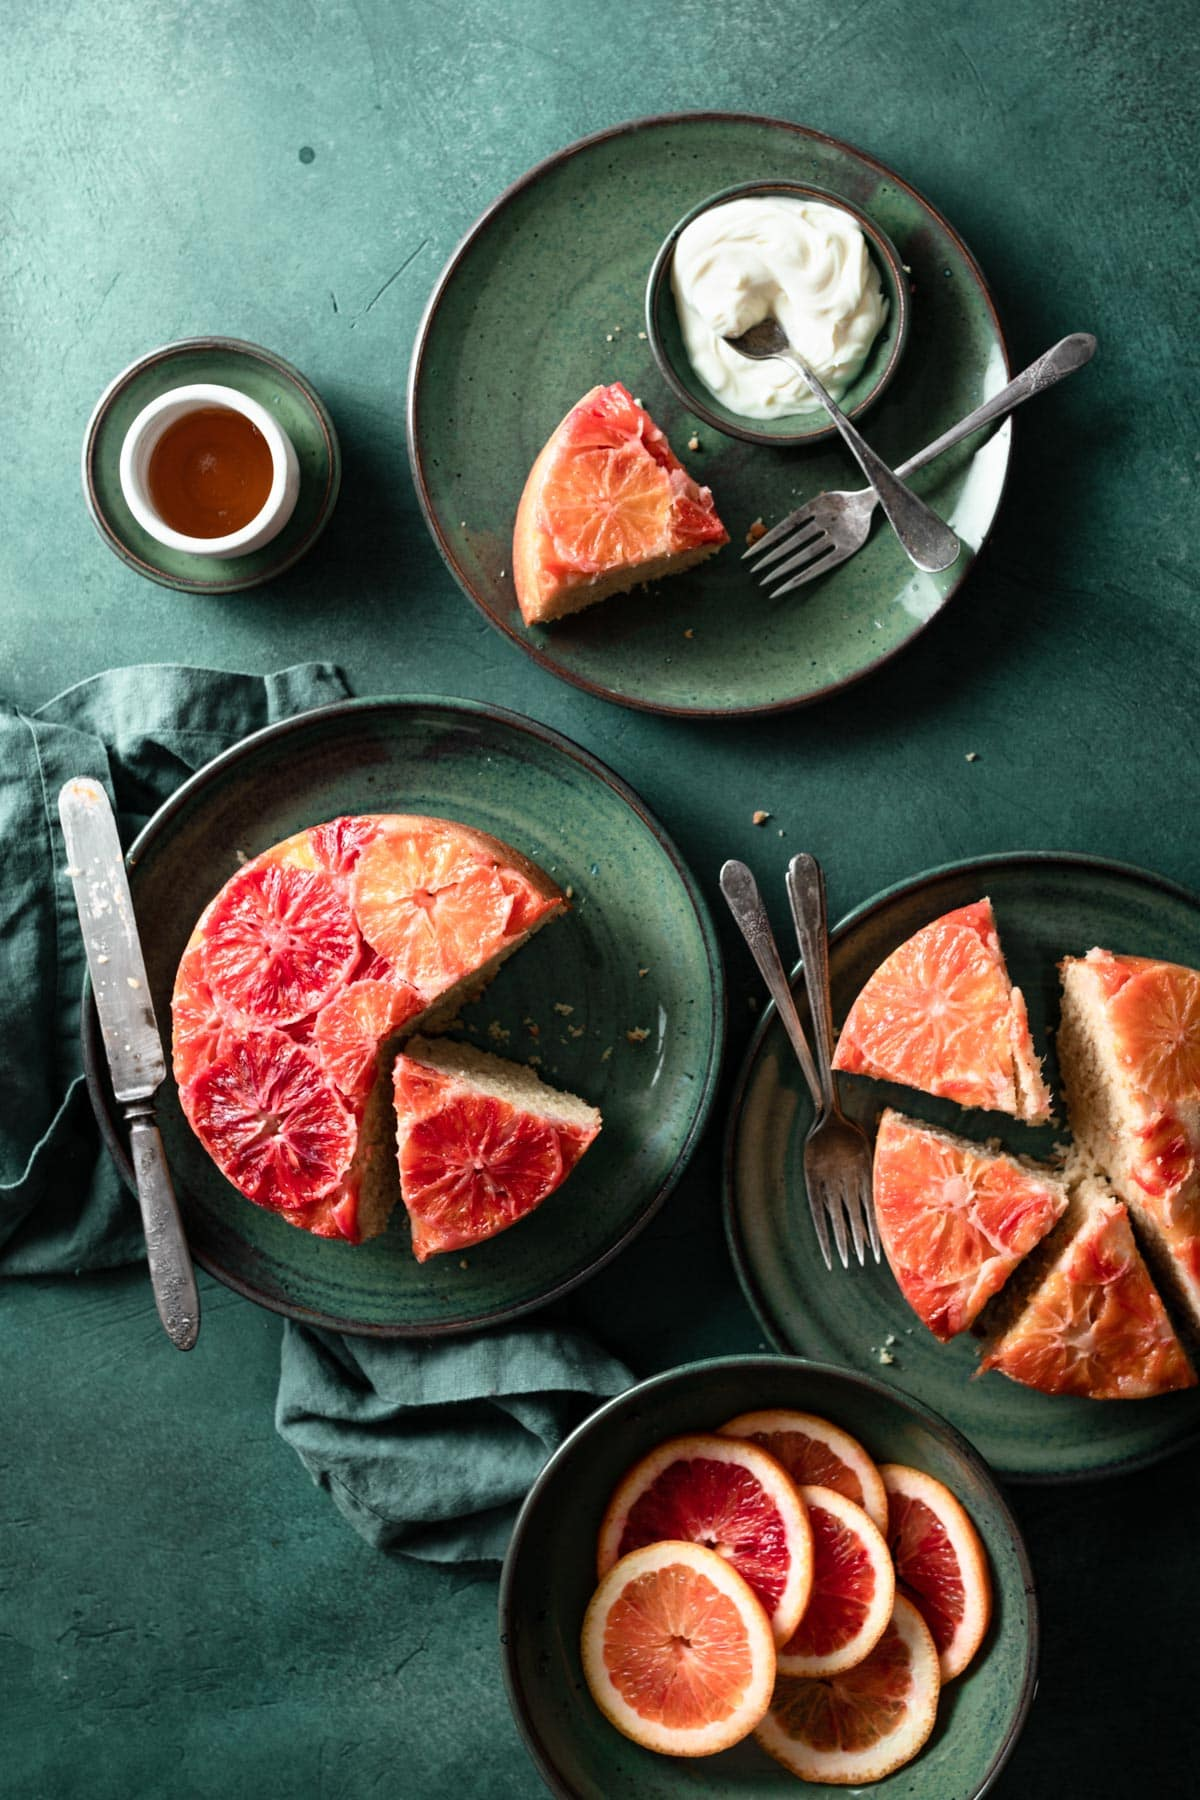 Upside down blood orange cakes with whipped cream.